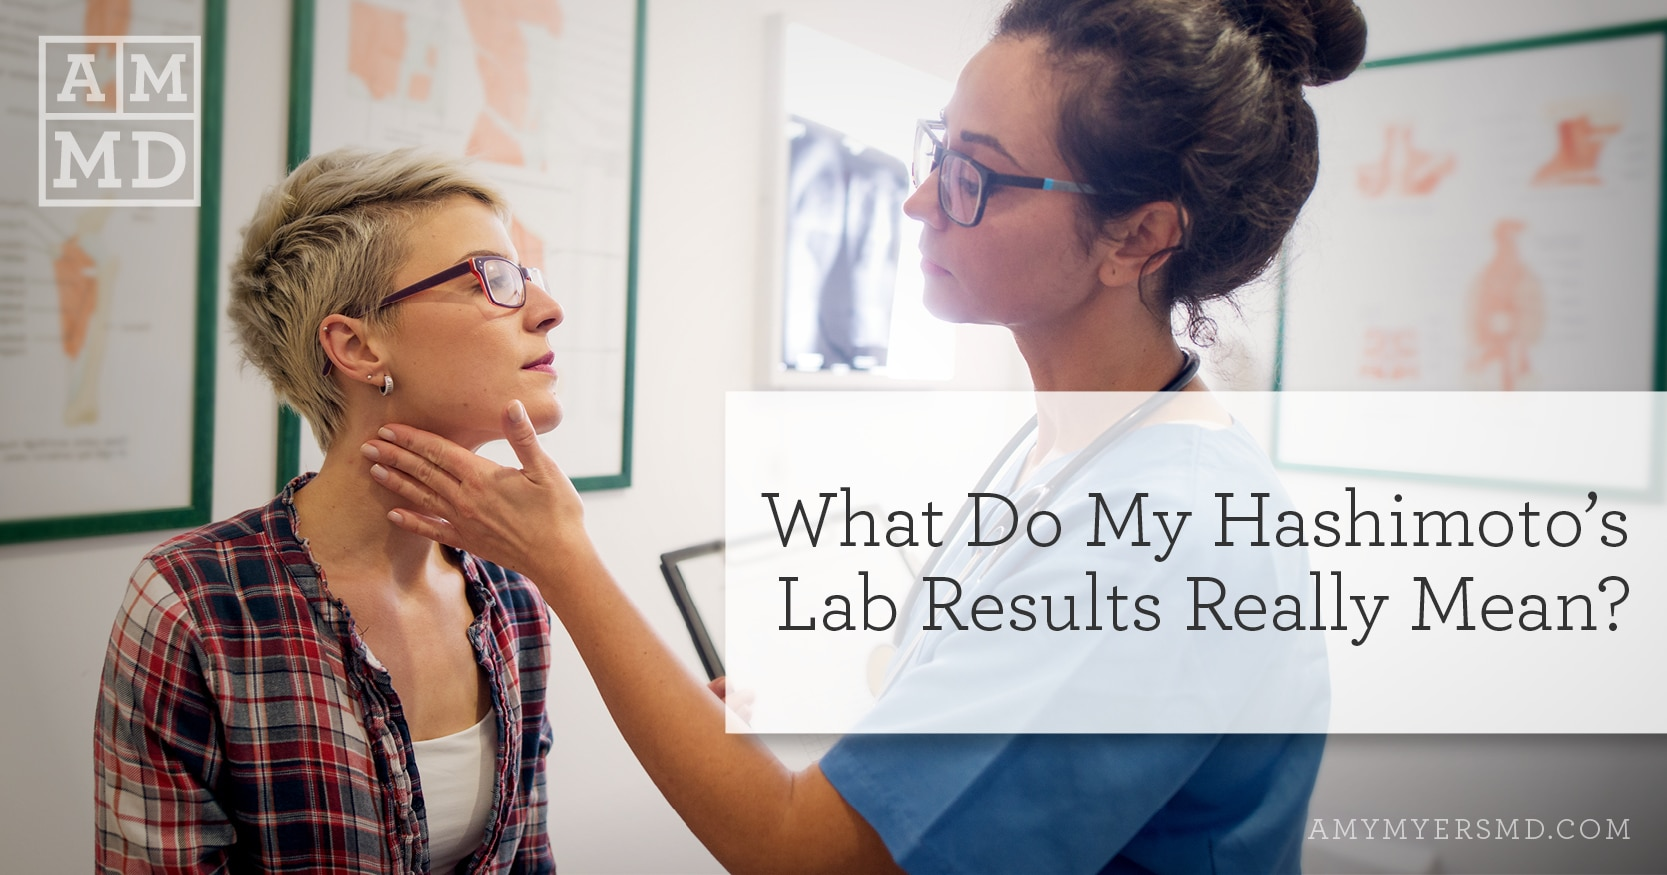 Doctor treating patient - Hashimoto's Lab Results and check-up banner image